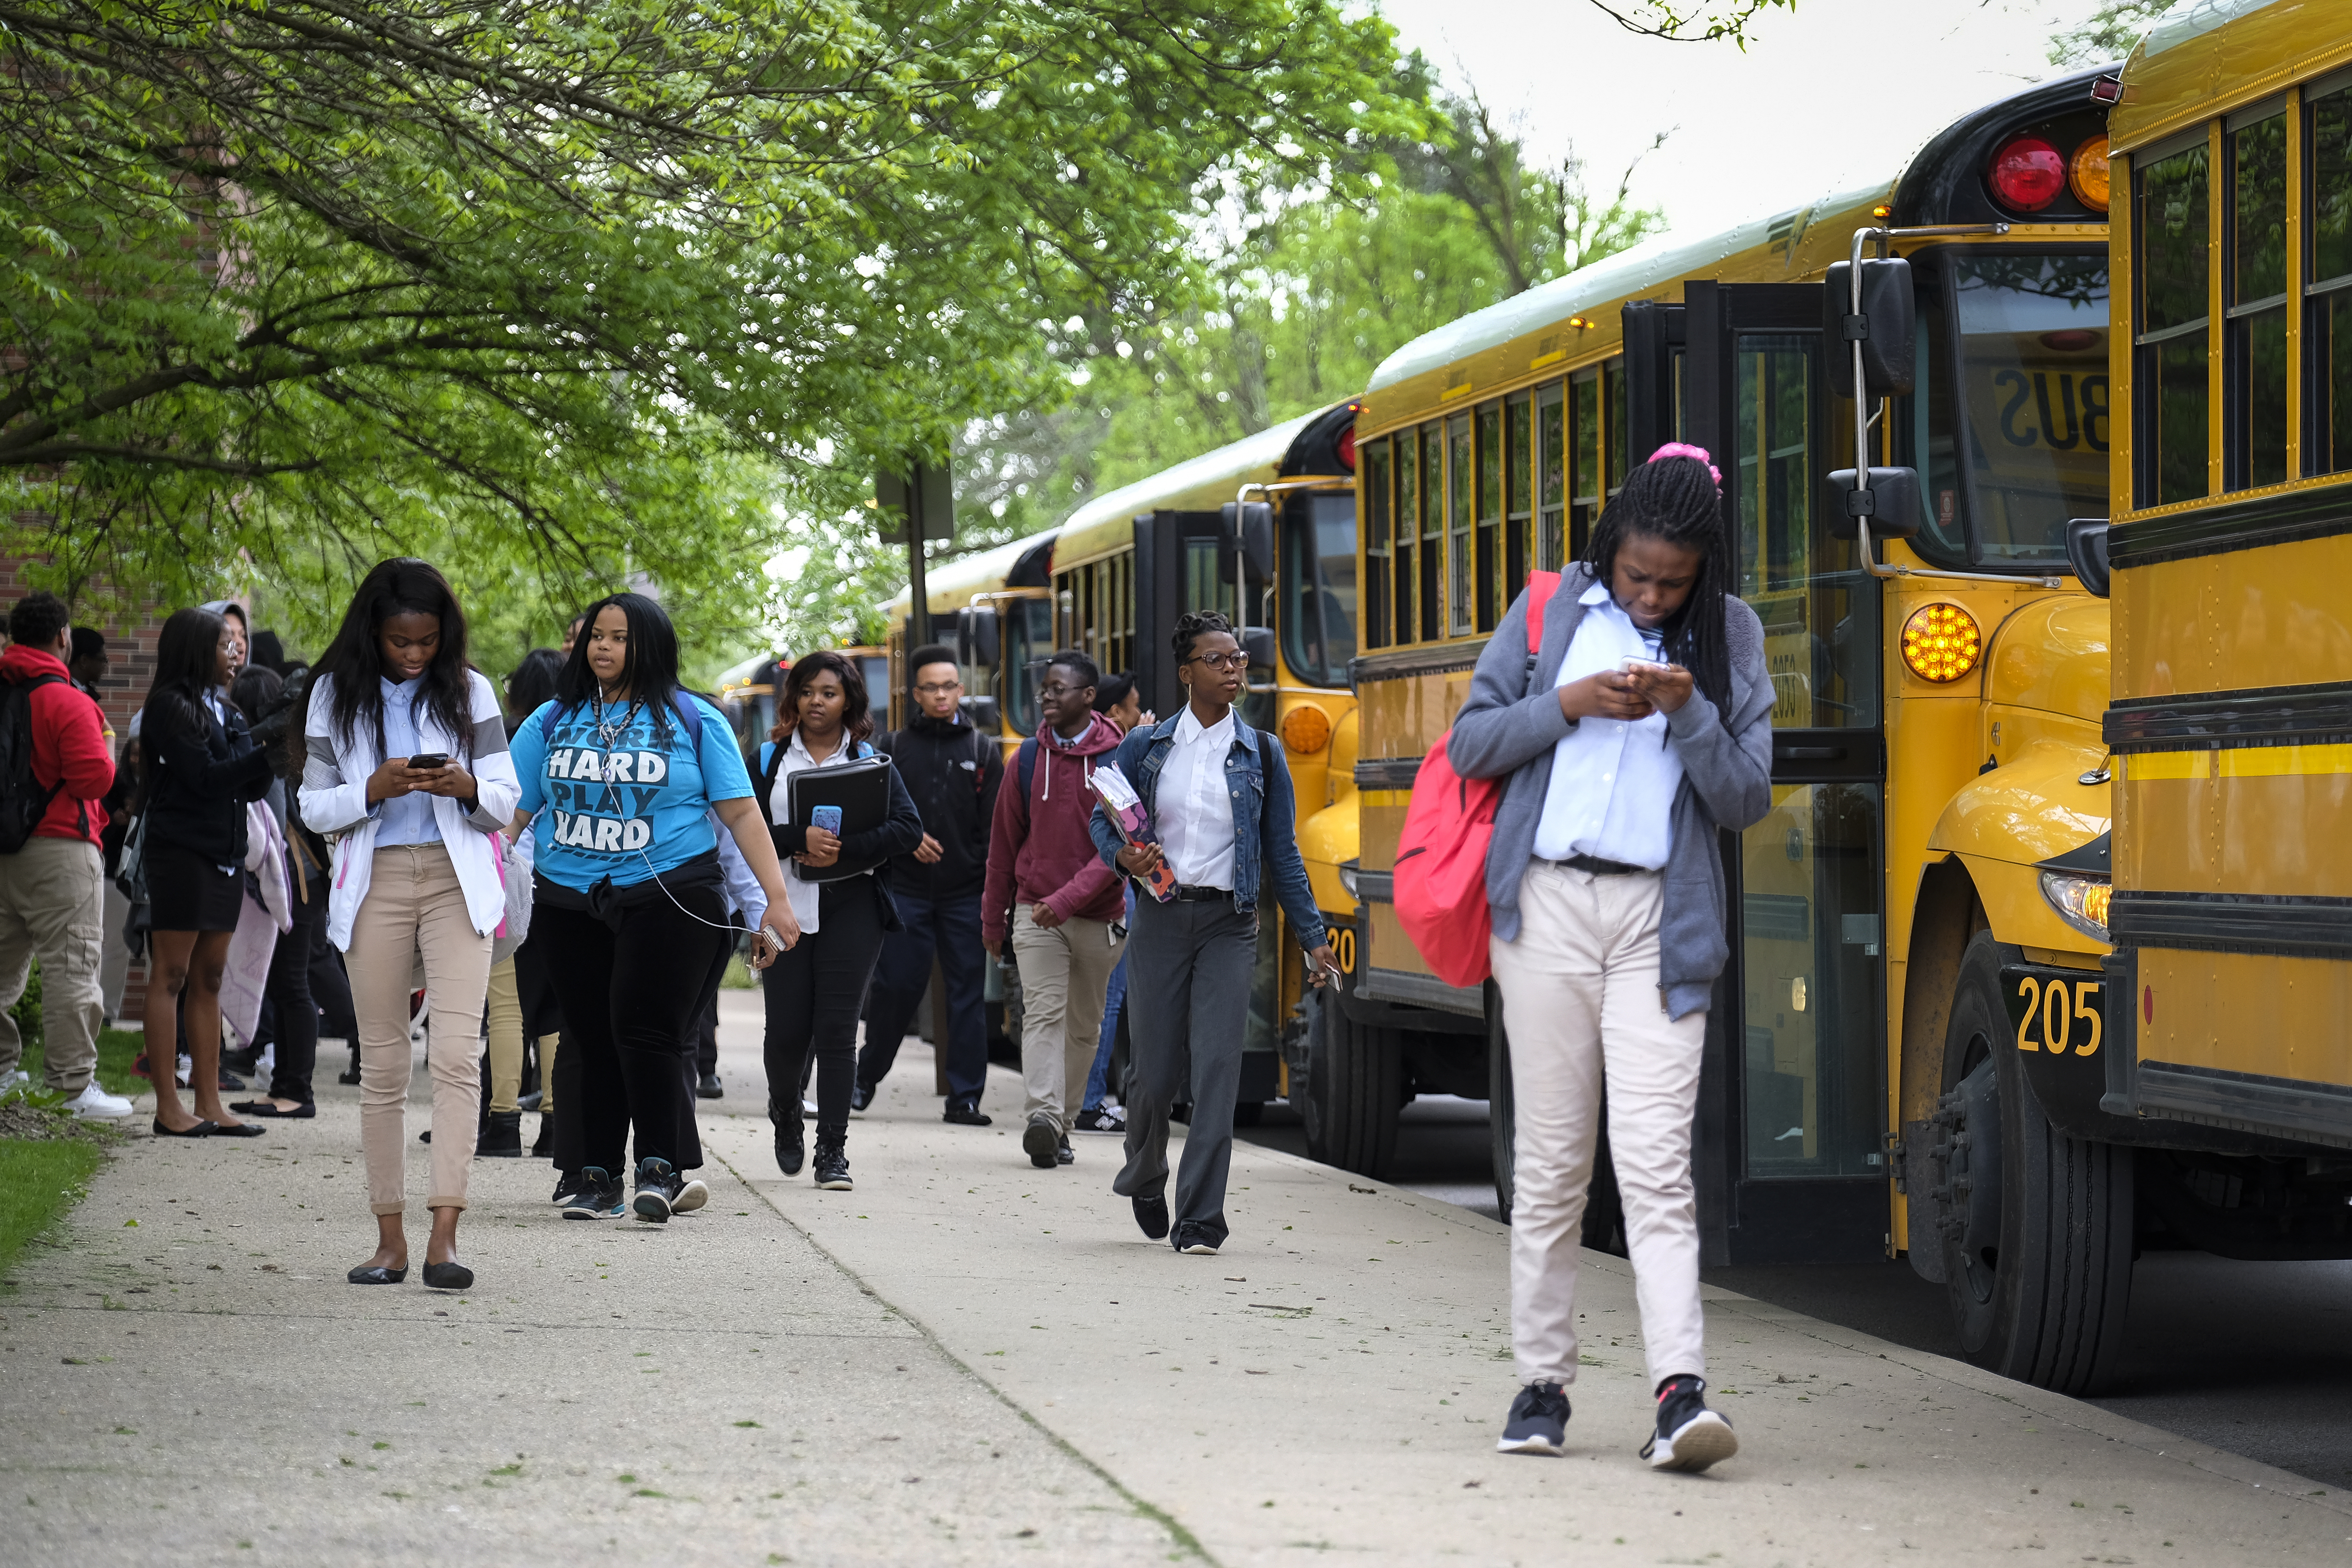 Students leave buses, on their way to classes at Providence Cristo Rey High School, a private, Roman Catholic high school in Indianapolis, Indiana. — May, 2019 — Photo by Alan Petersime/Chalkbeat